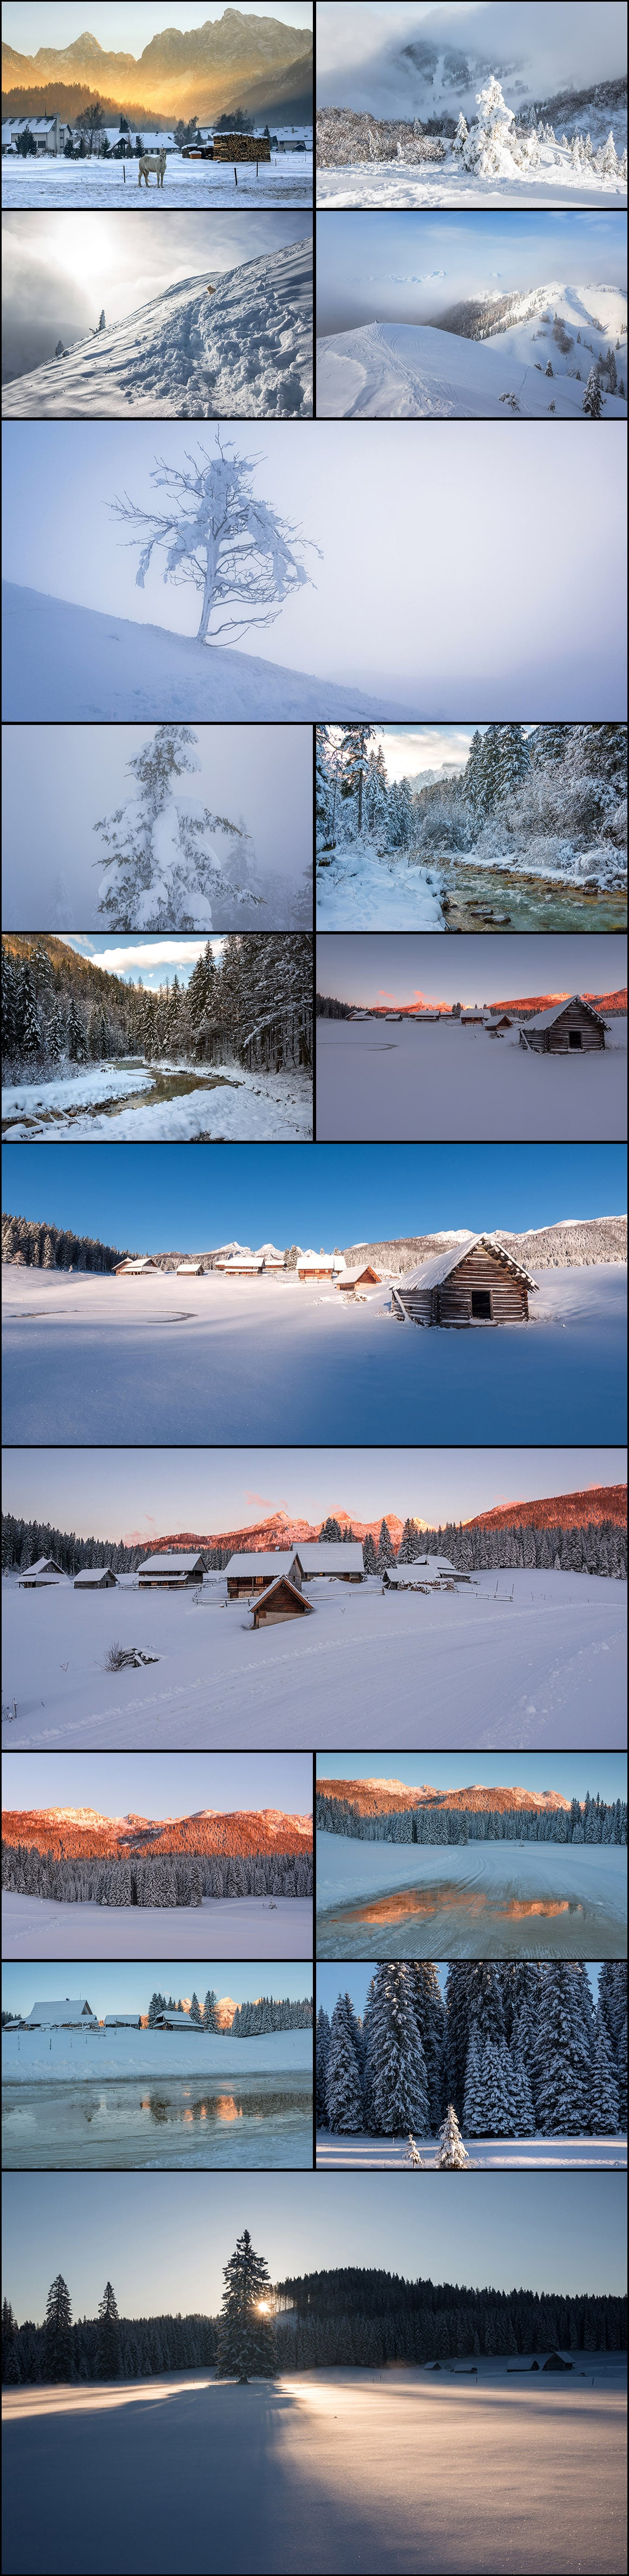 500+ Stock Images. Ultimate Photo Bundle  – $59 - PREVIEW winter2